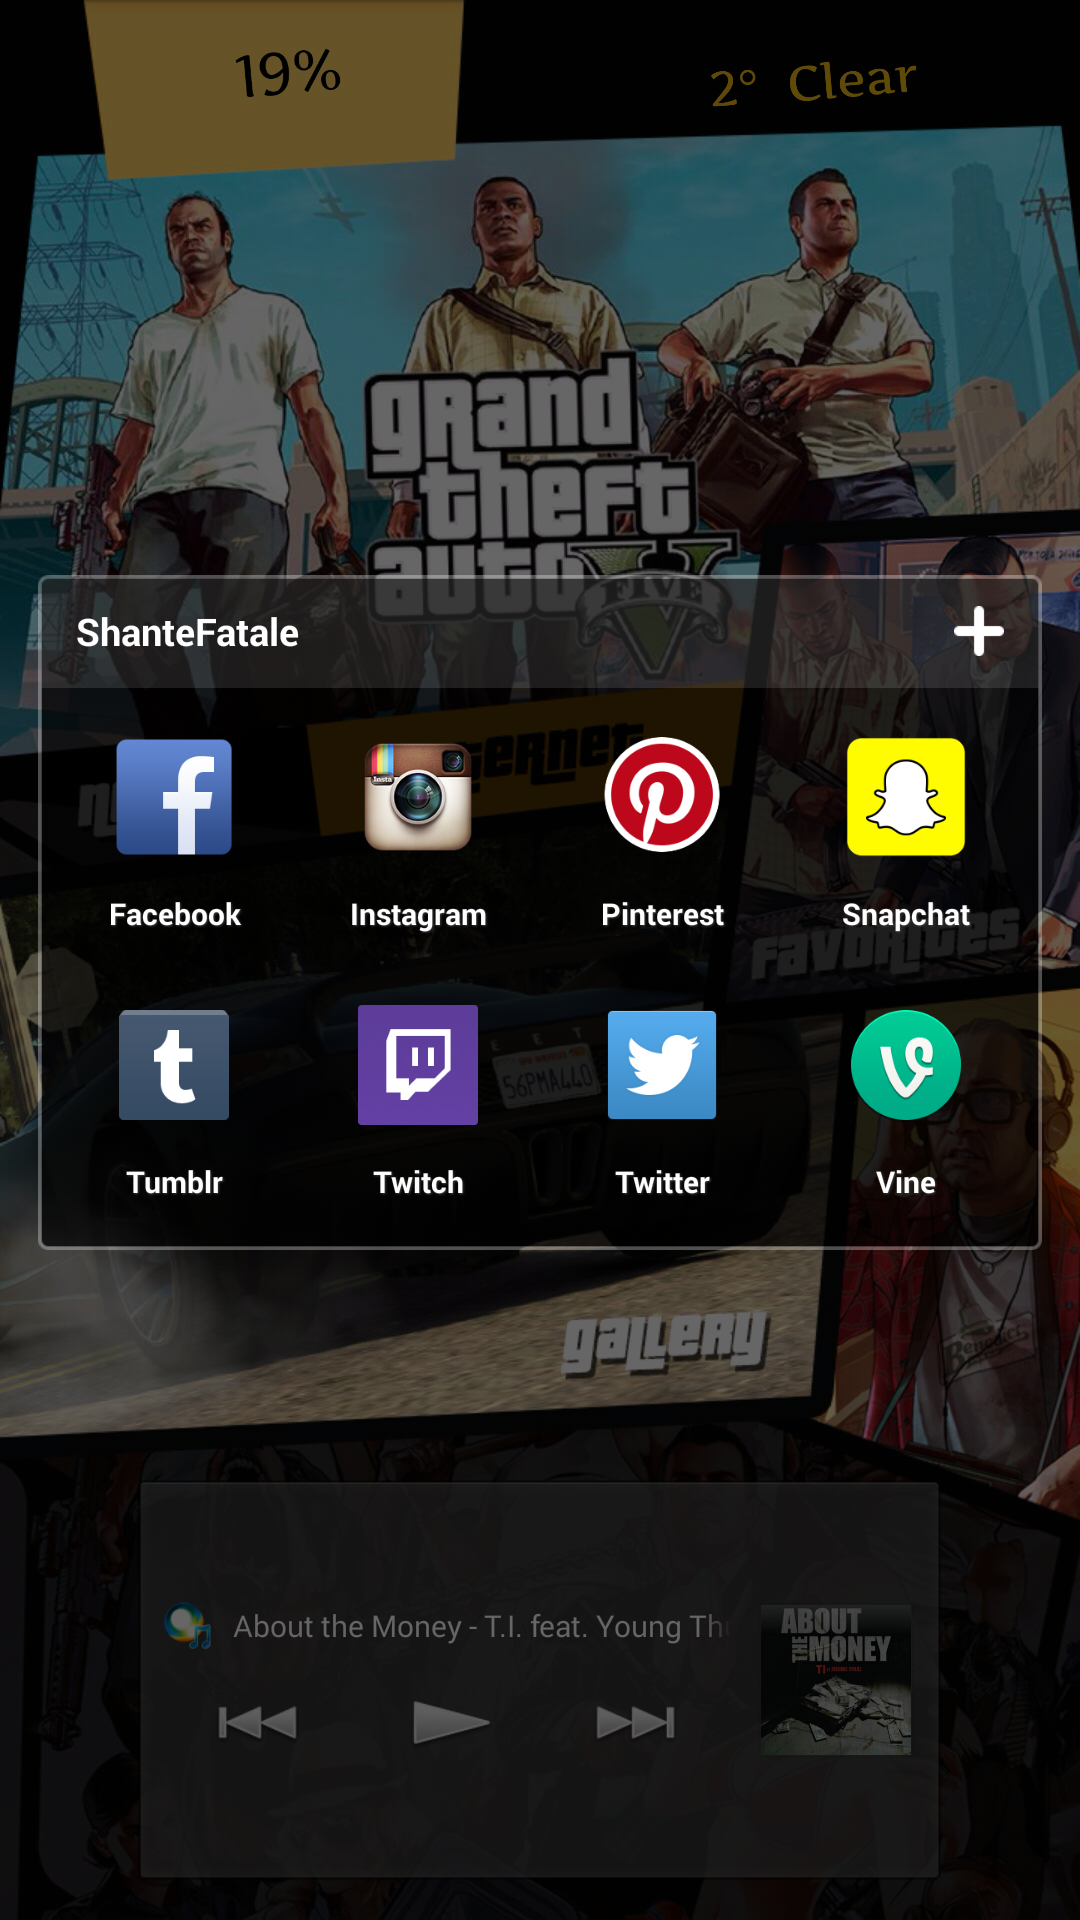 Google chrome theme gta v - Favorites Is A Folder Of All My Commonly Used Social Network Apps Gallery Is Obviously Gallery And I Have A Music Launcher Which Is Linked To My Sony Music